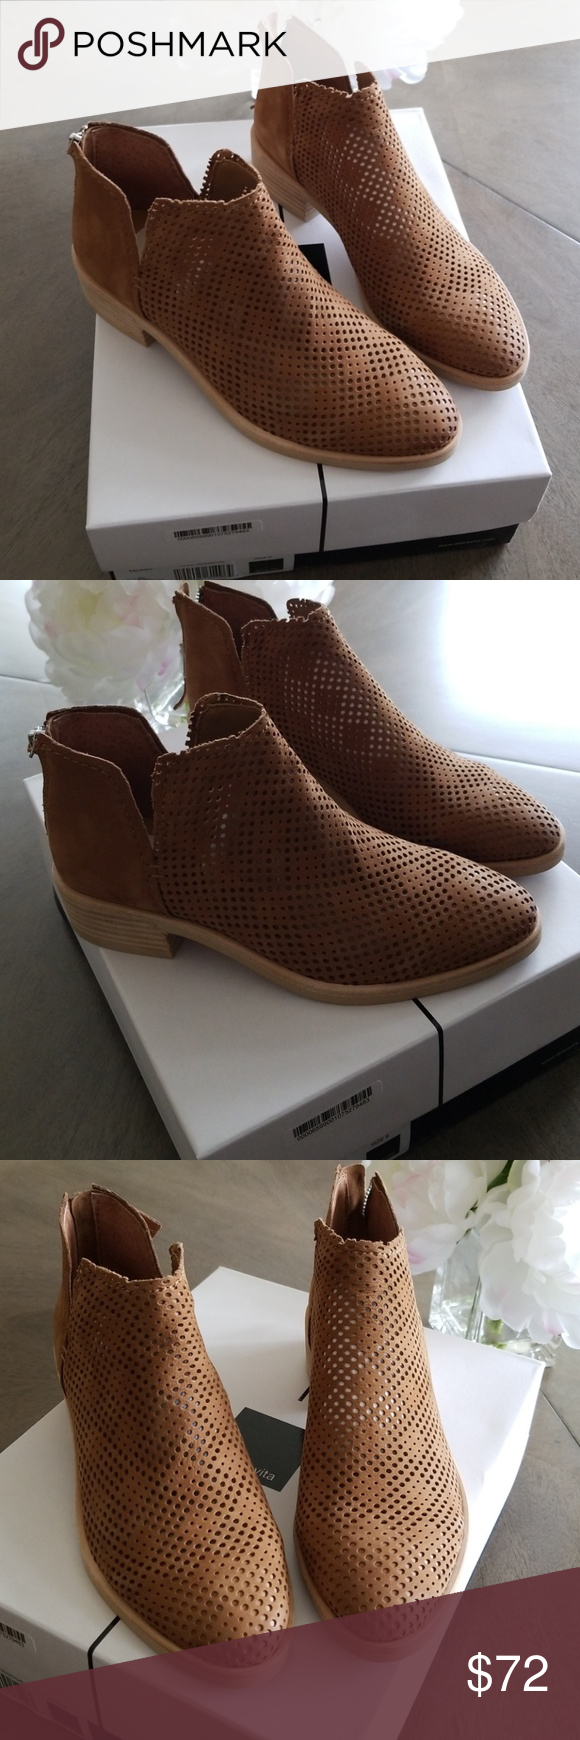 18586bafd051 Dolce Vita Tauris Perforated Bootie Perforations add breathability and a  cool